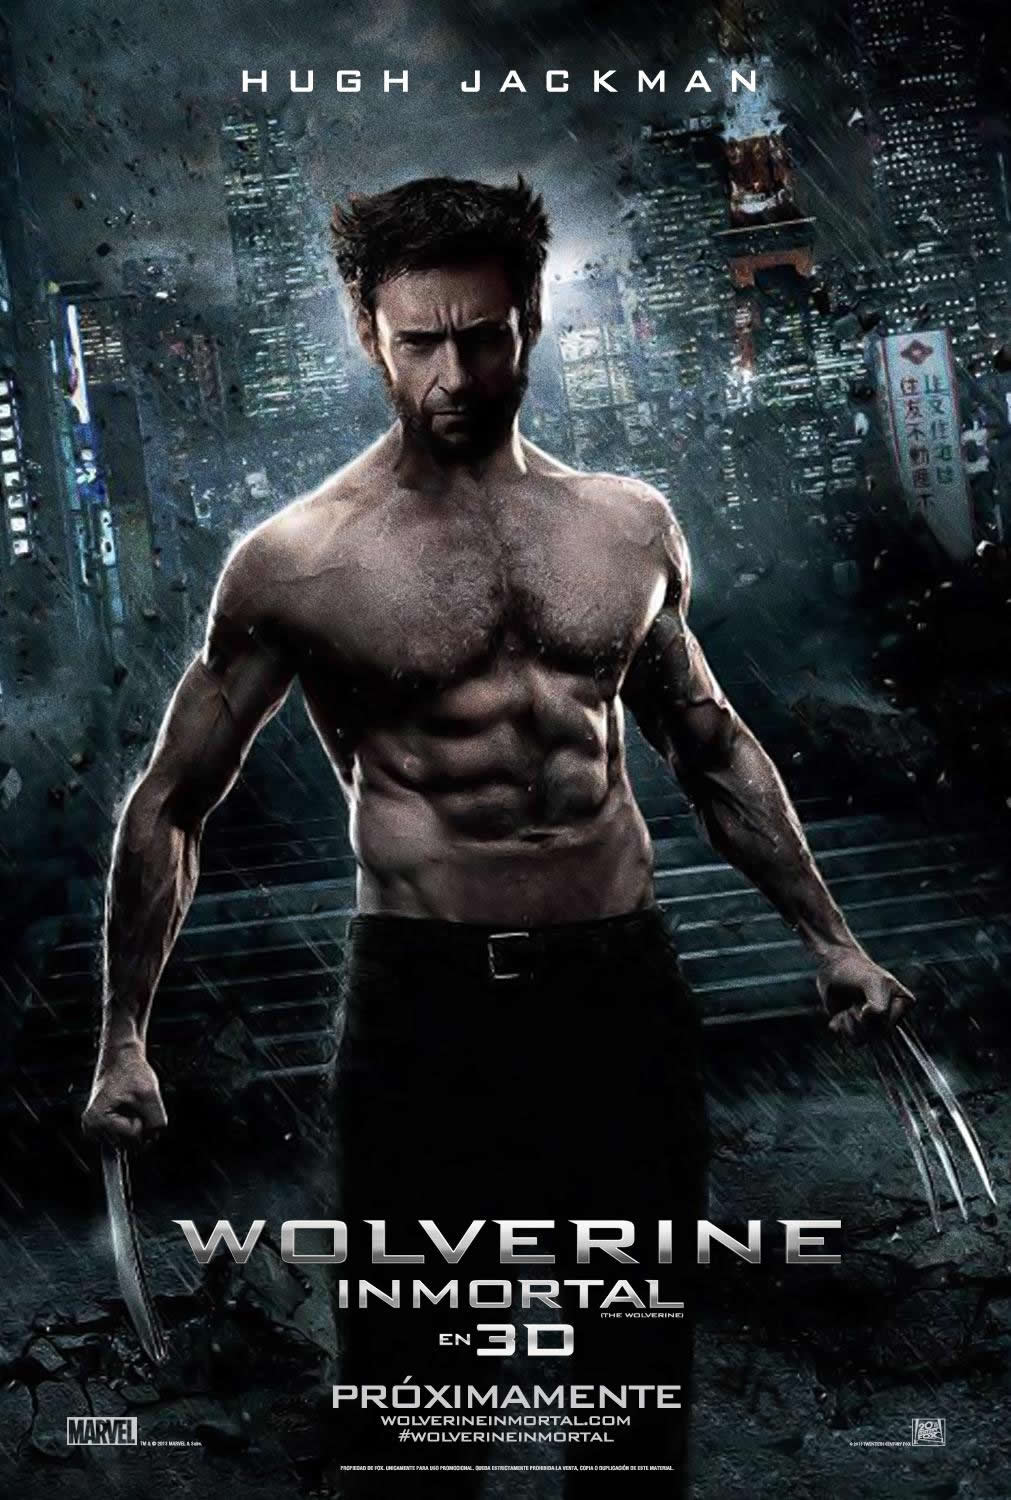 Photo of Cinema | Wolverine Imortal – Eu Fui! (Crítica)